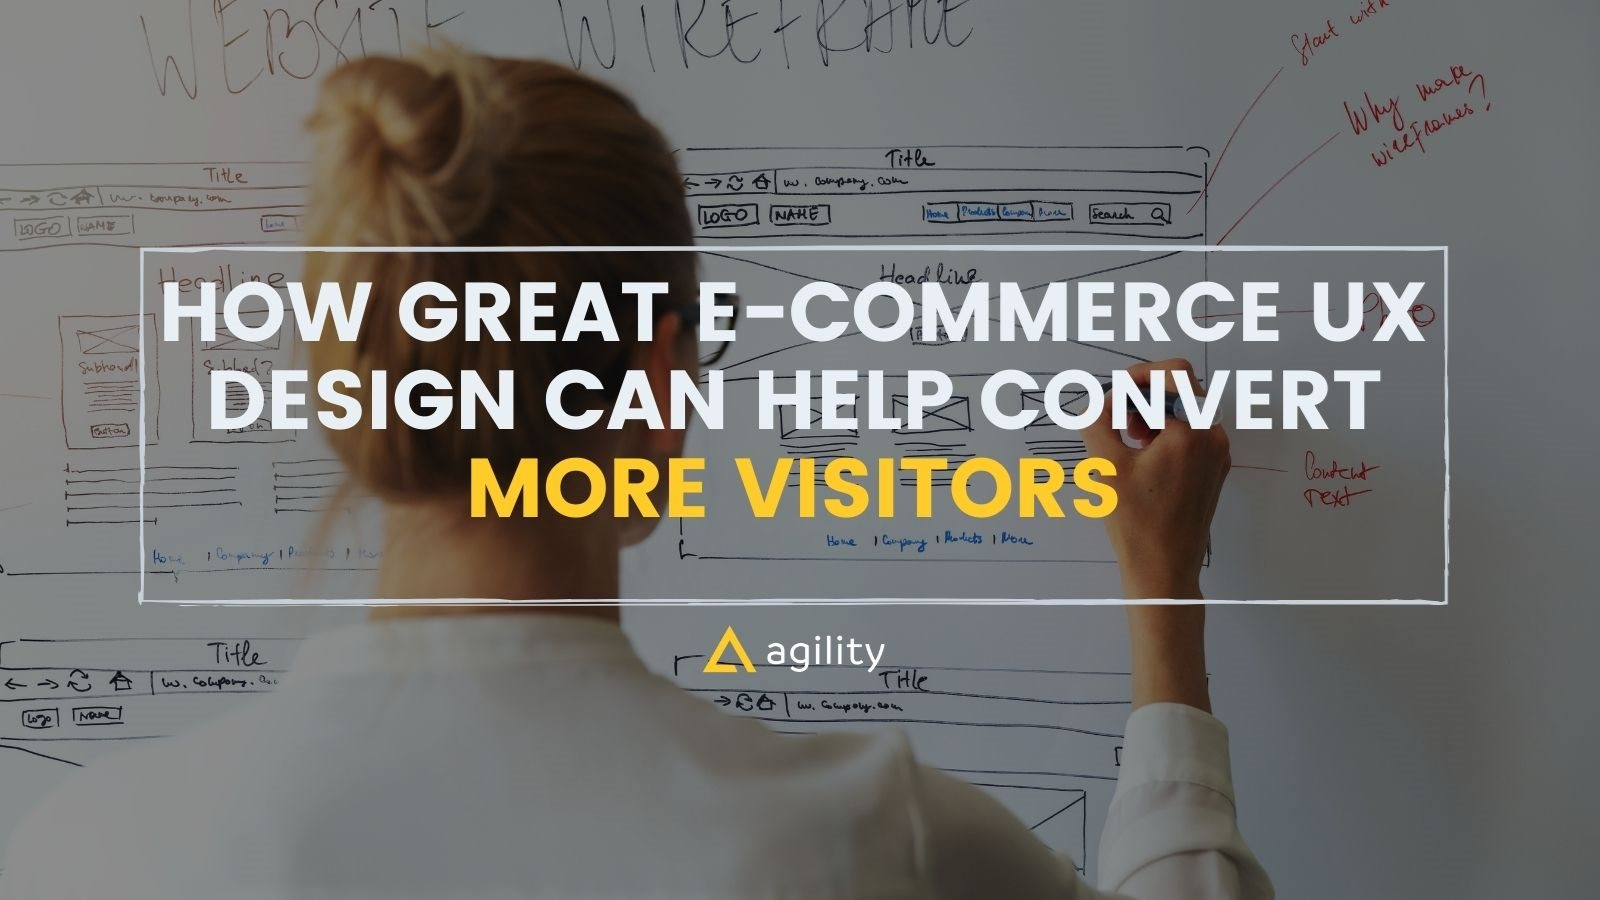 UX design to convert leads on agilitycms.com